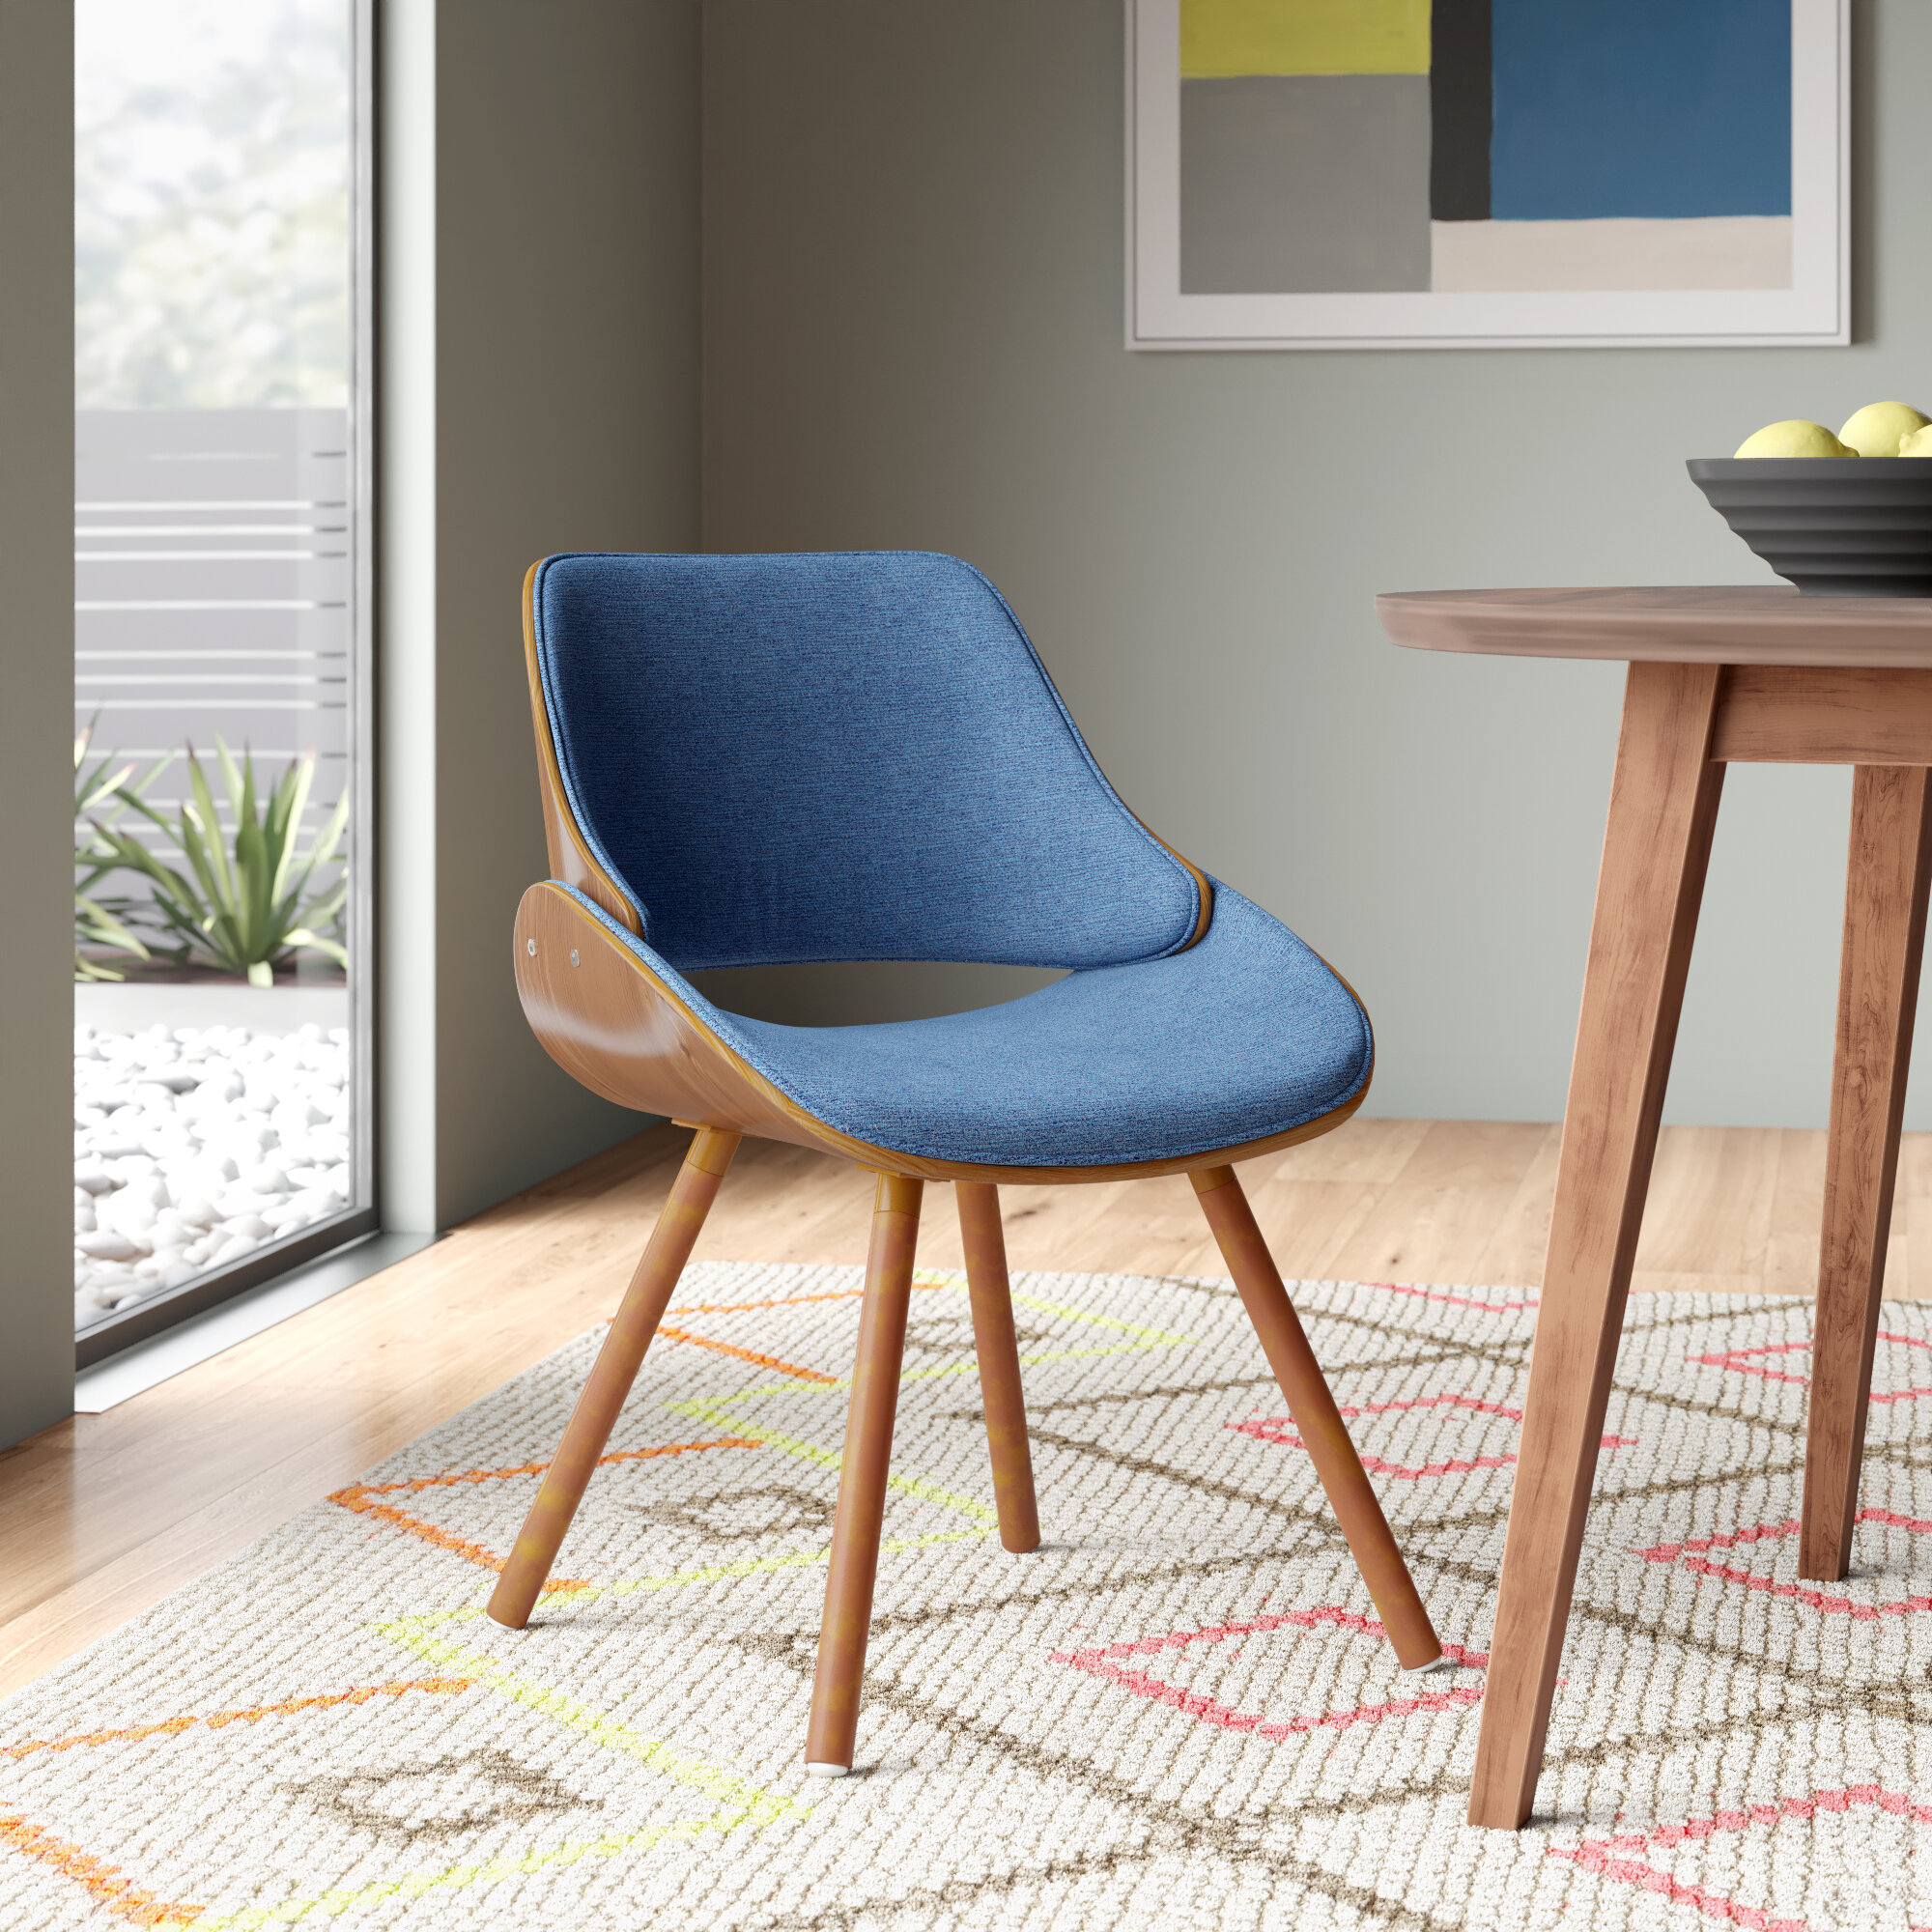 Remarkable Arno Modern Upholstered Dining Chair Ibusinesslaw Wood Chair Design Ideas Ibusinesslaworg